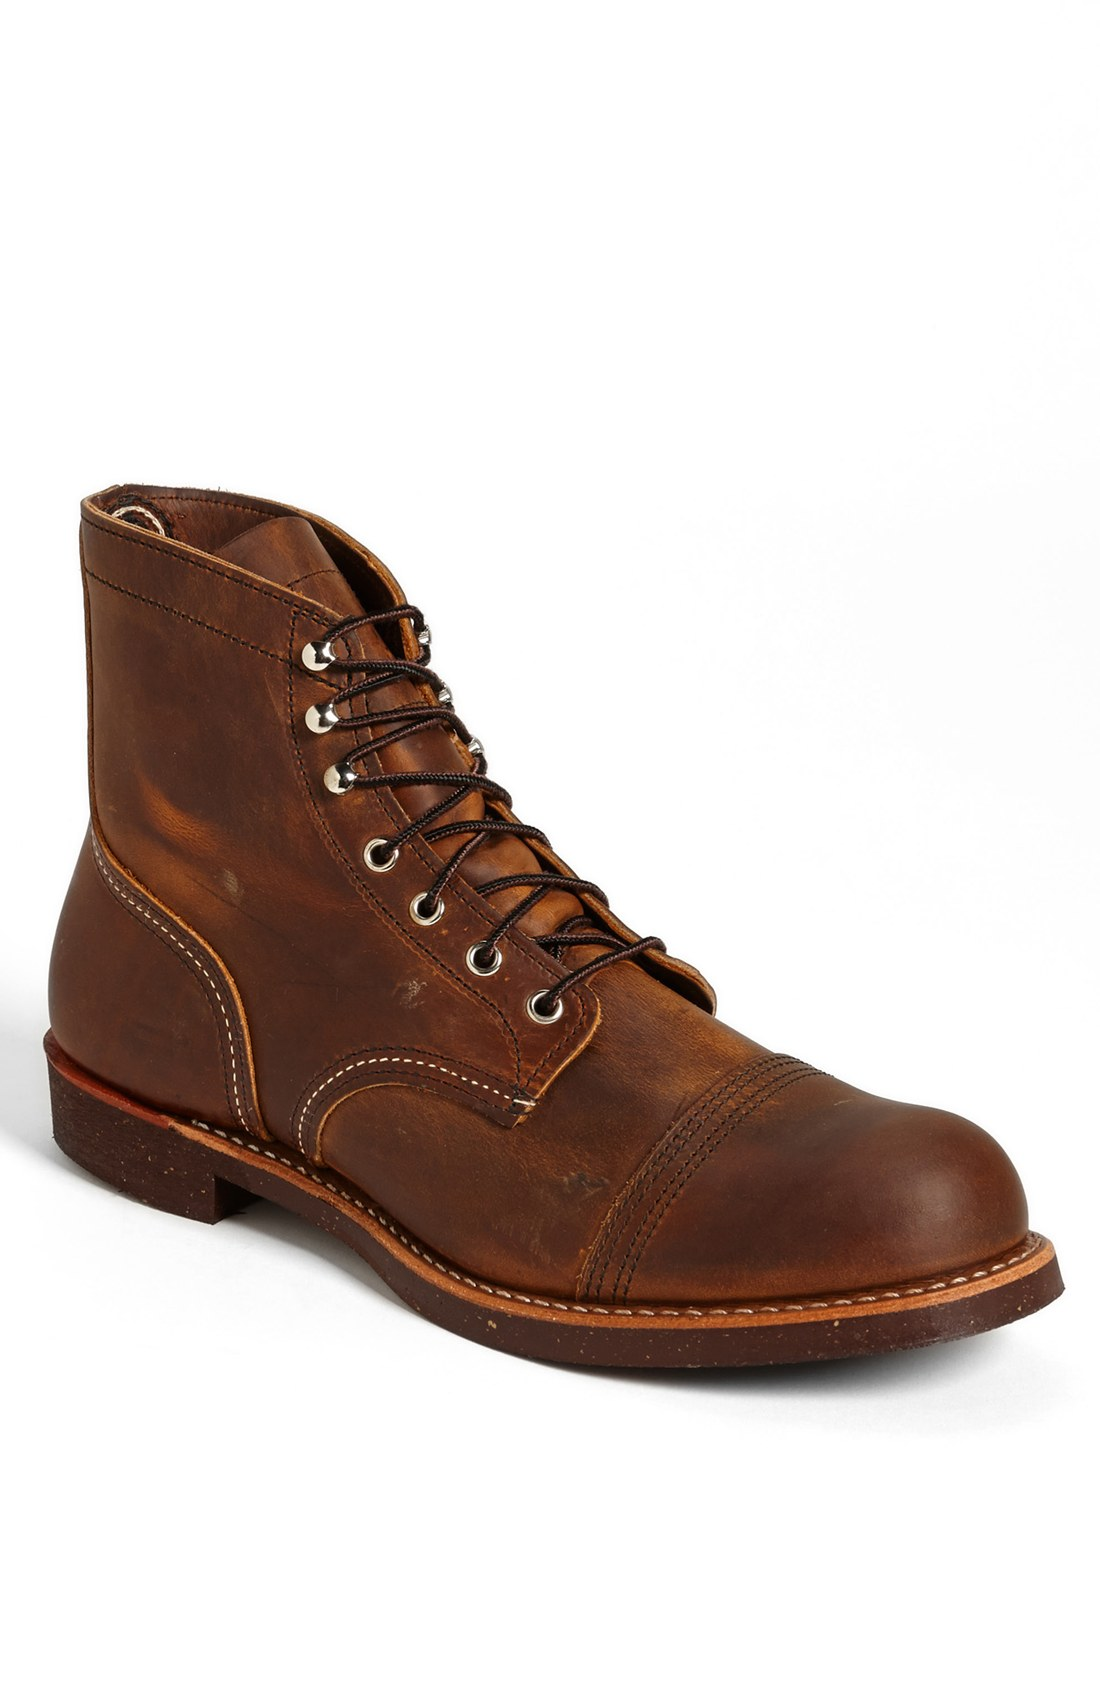 Red Wing Boots Online Sales xBl3uTIC